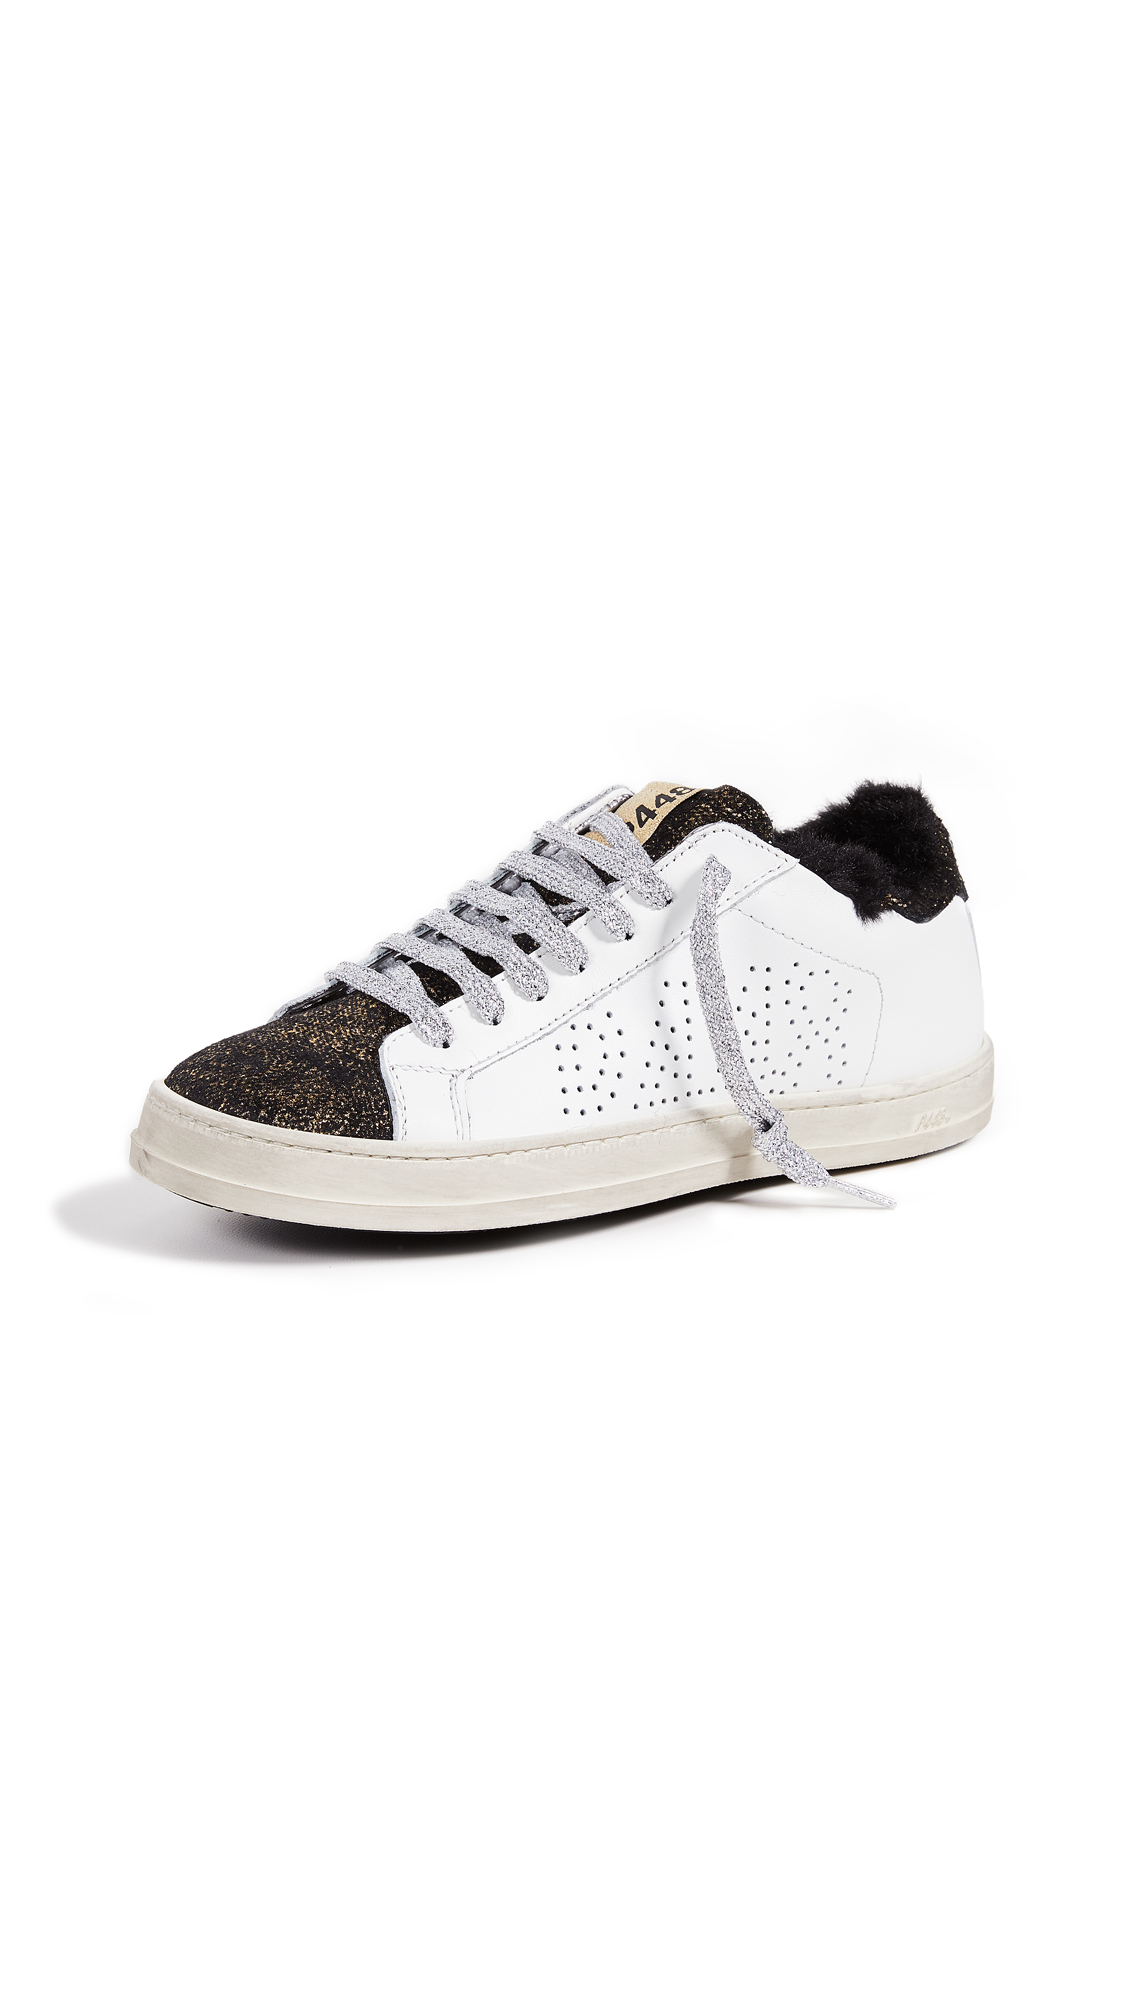 P448 John Sneakers - White/Monk